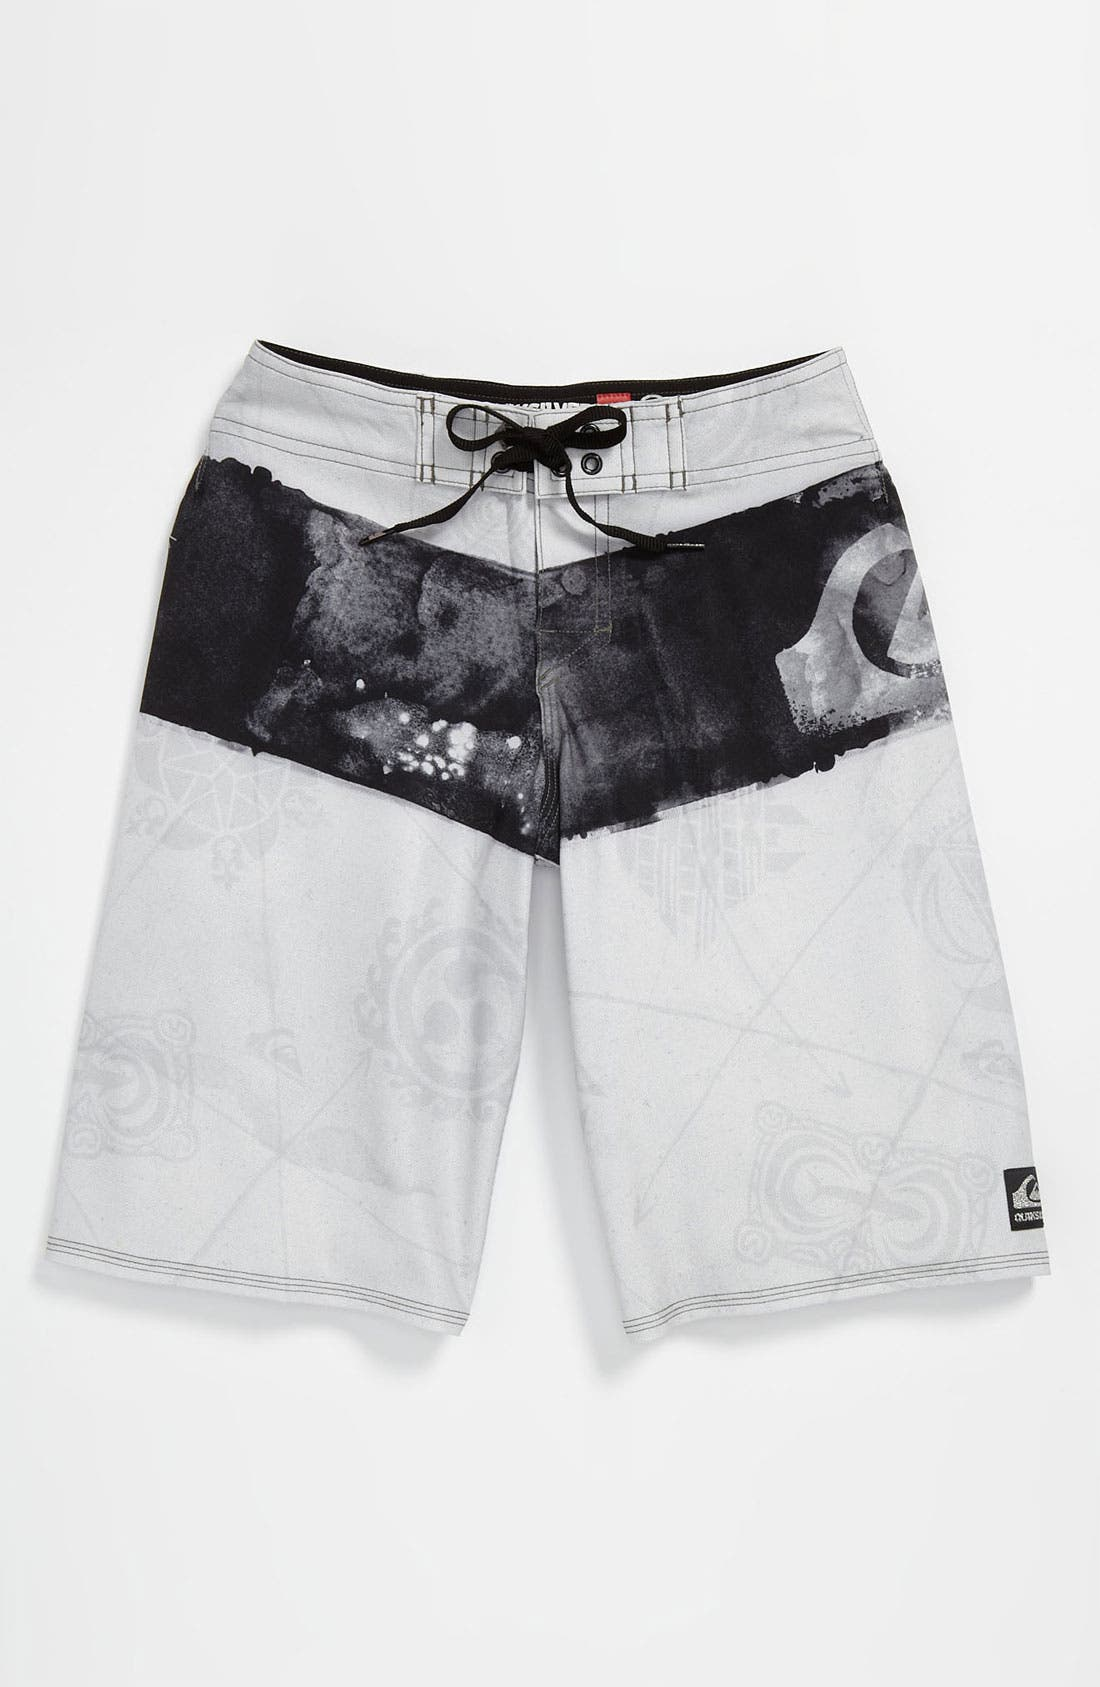 Alternate Image 1 Selected - Quiksilver 'Cypher Kelly Nomad'  Board Shorts (Big Boys)